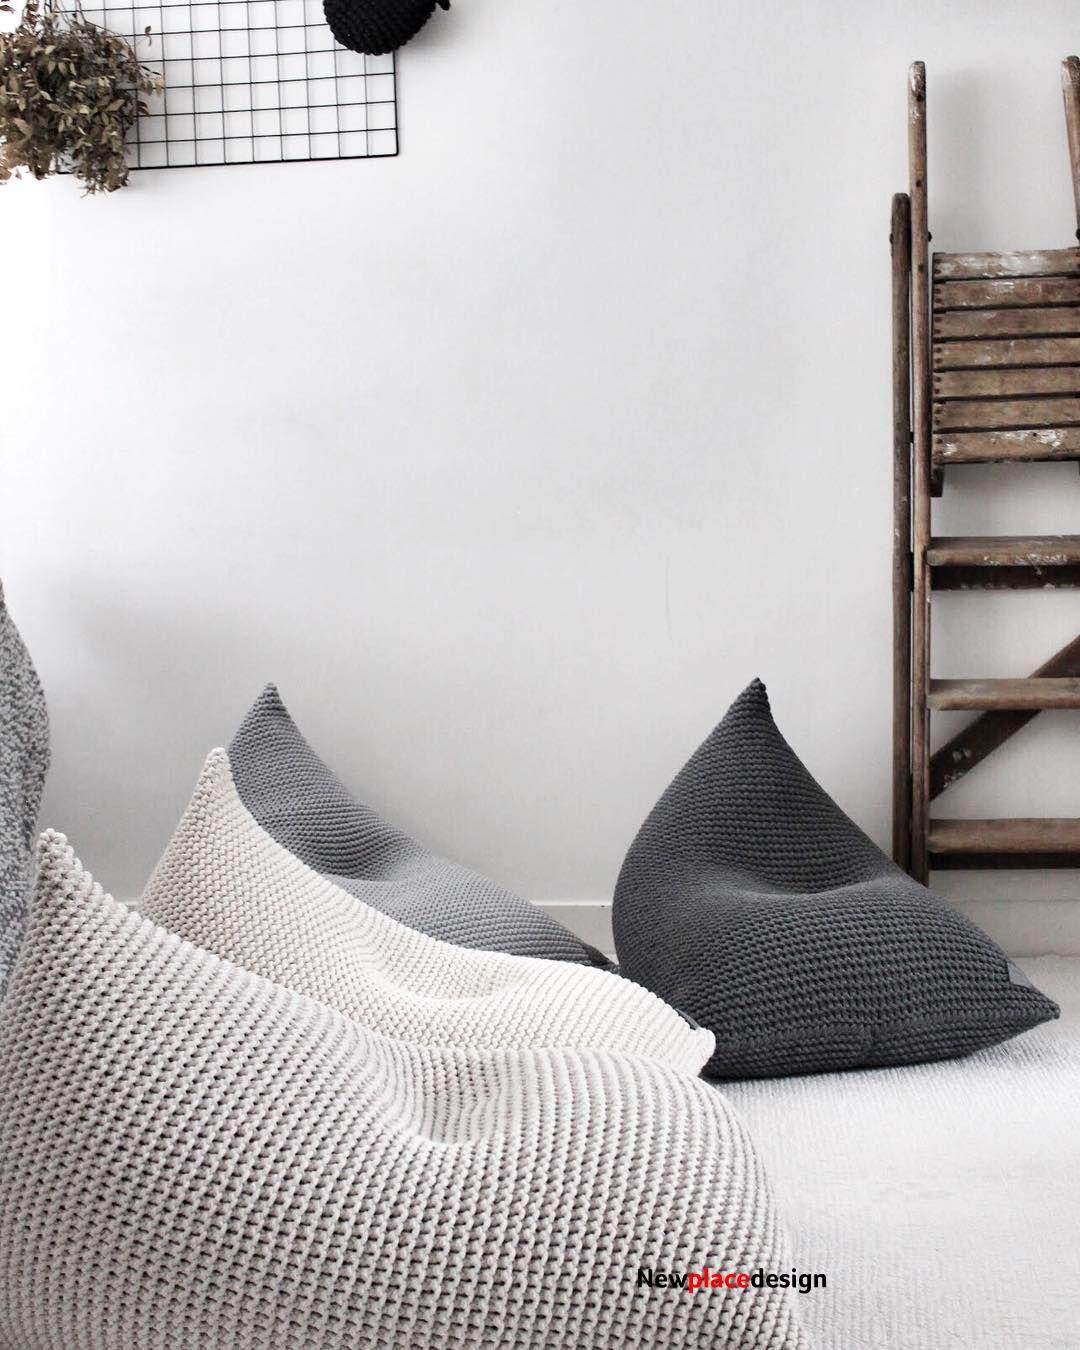 10 Best Bean Bag Chairs for Adults - Cool Things to Buy 247